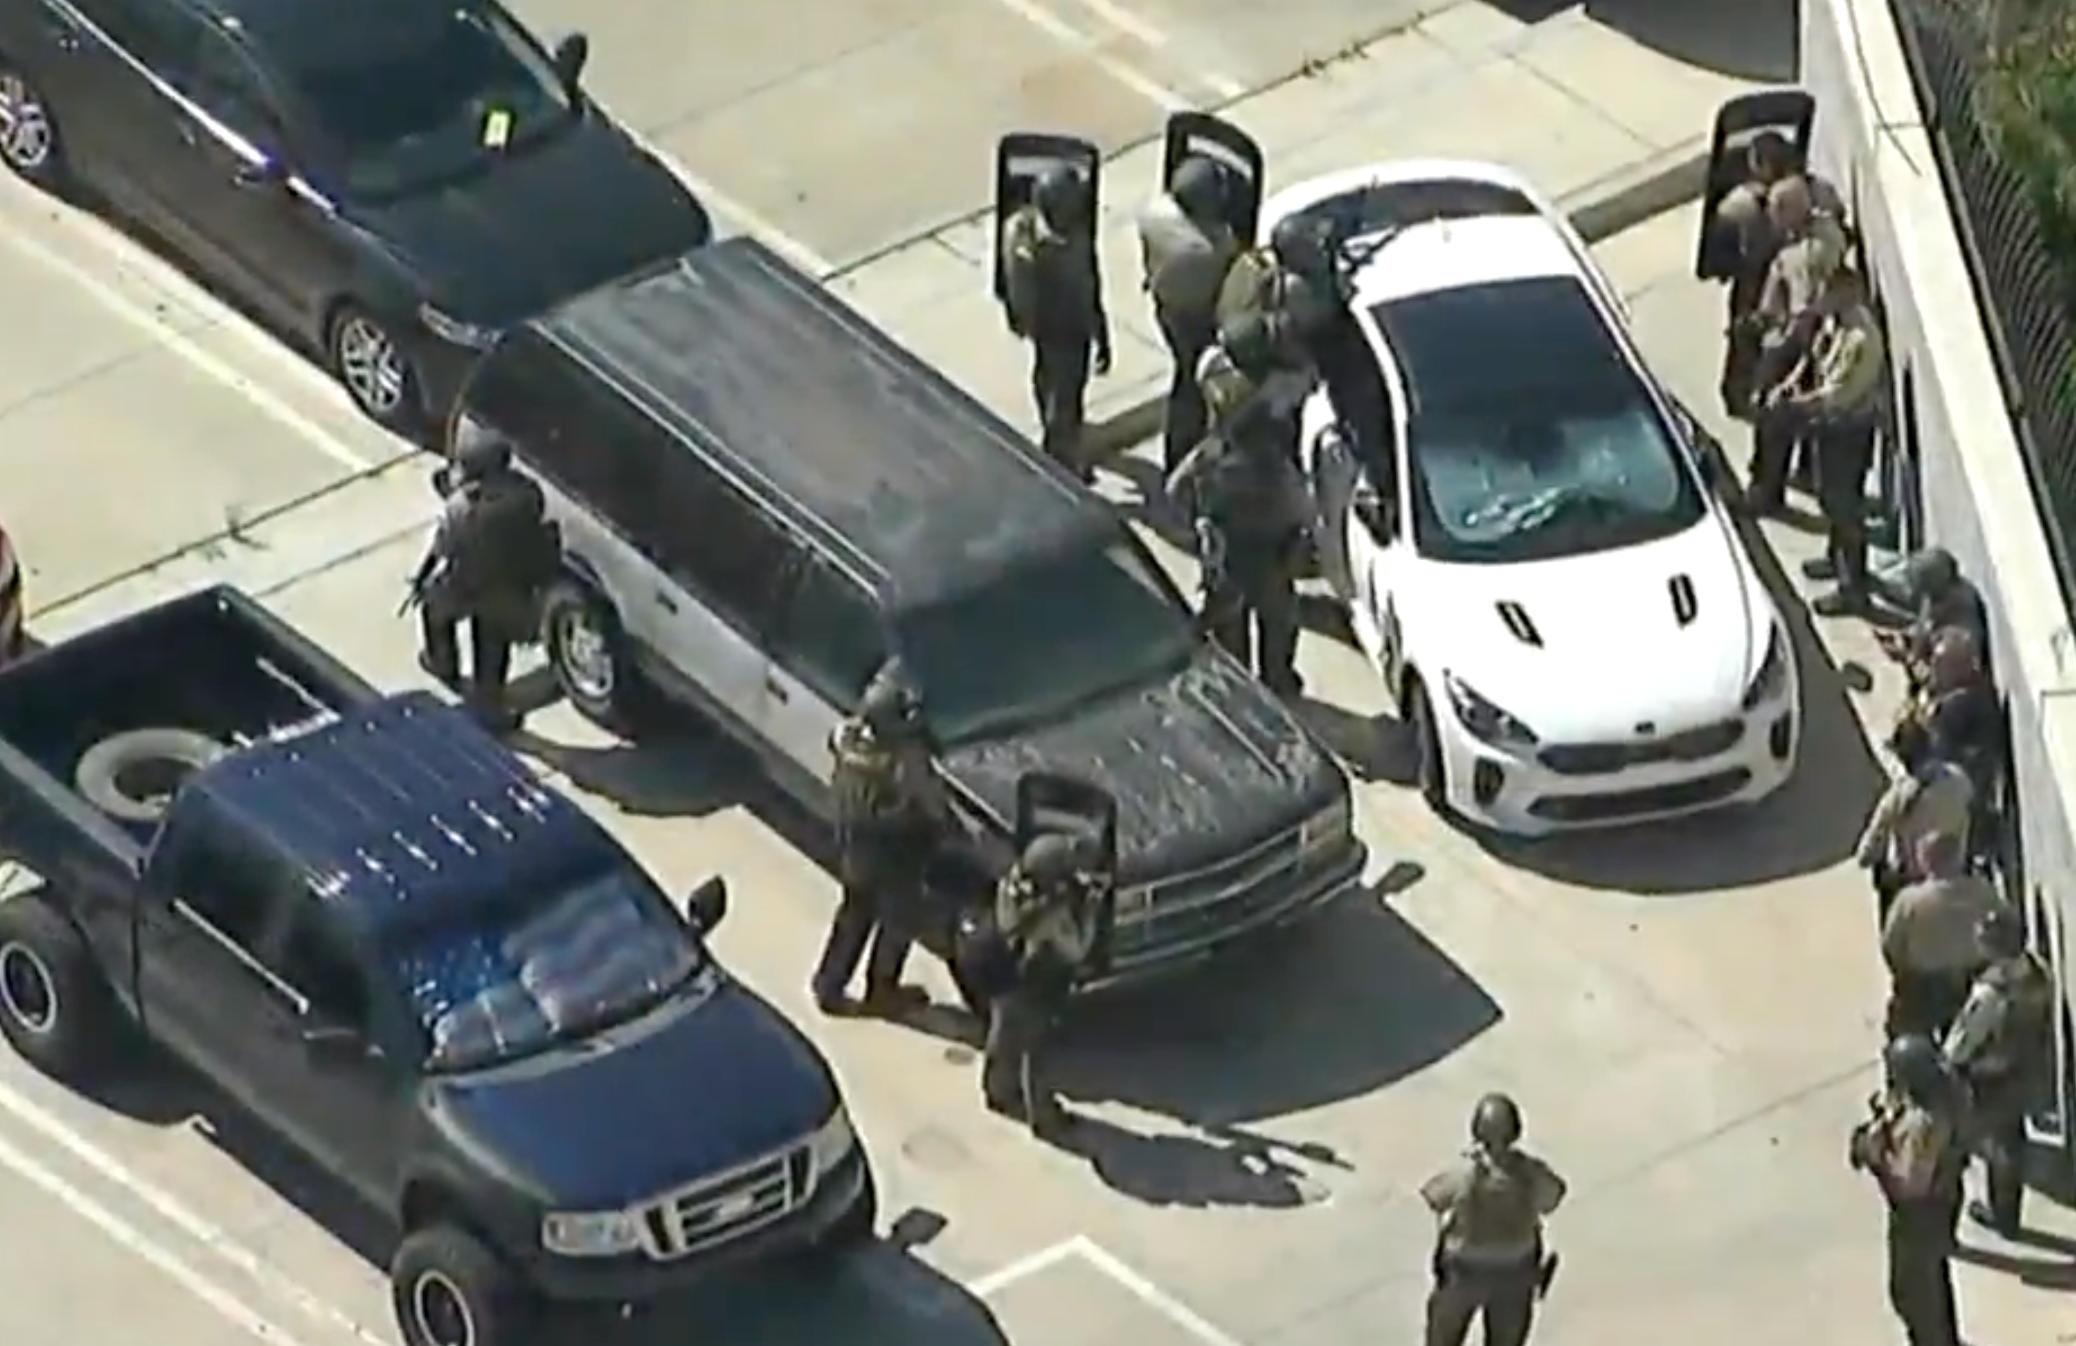 Manhunt underway: Sniper shoots deputy walking out of Sheriff's Department